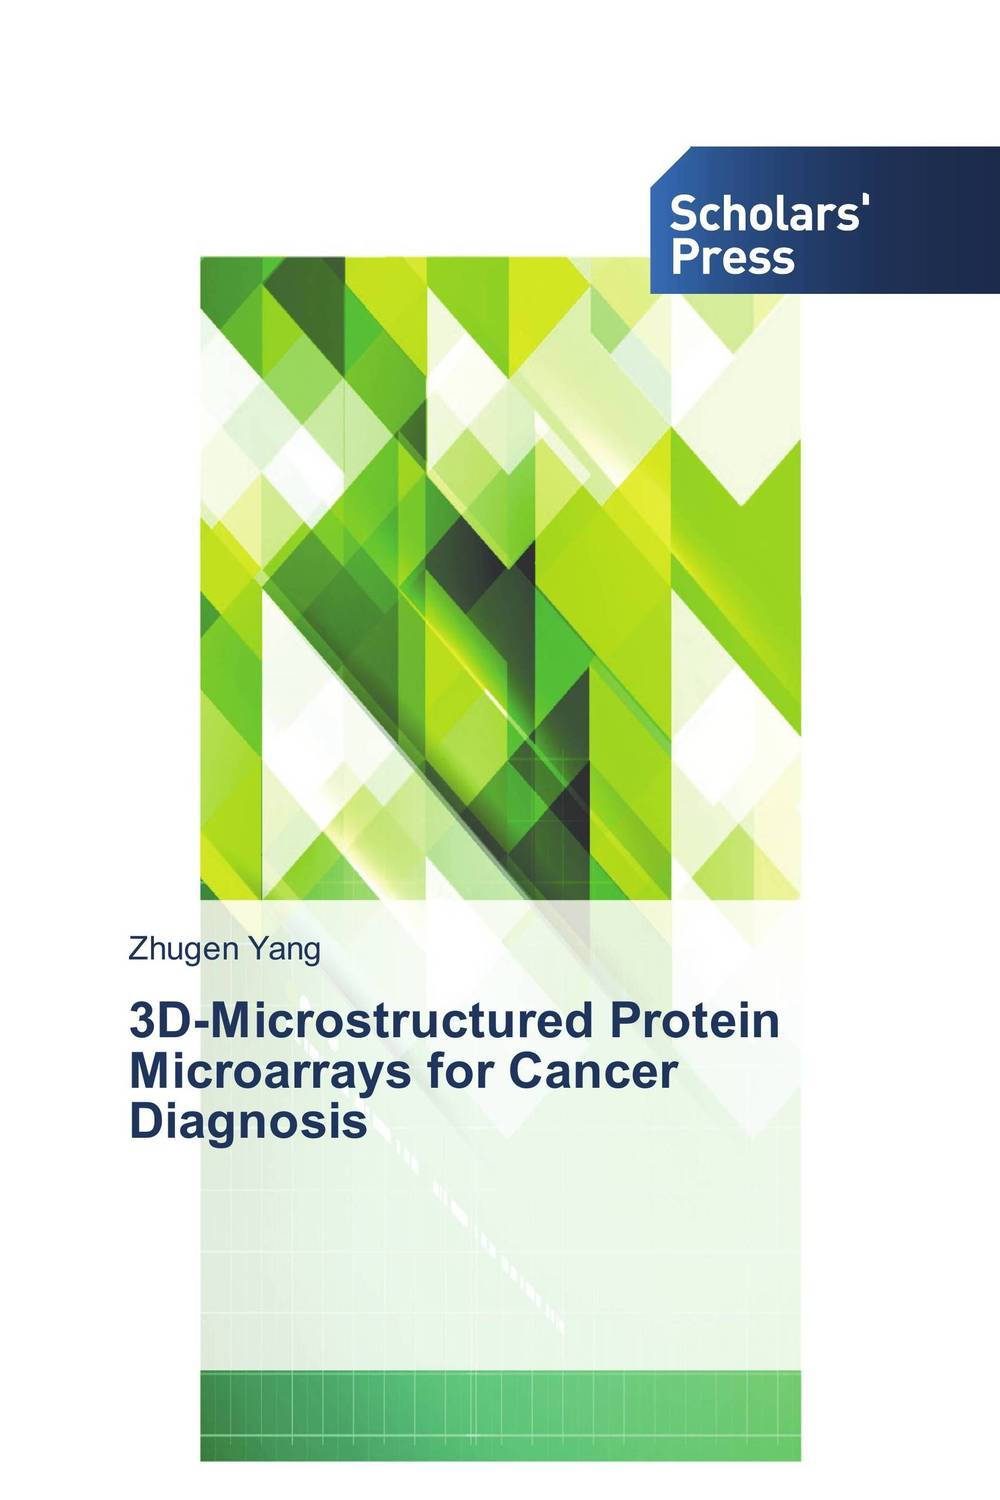 3D-Microstructured Protein Microarrays for Cancer Diagnosis breast cancer screenning device is the early breast cancer detection and test to detect breast cancer